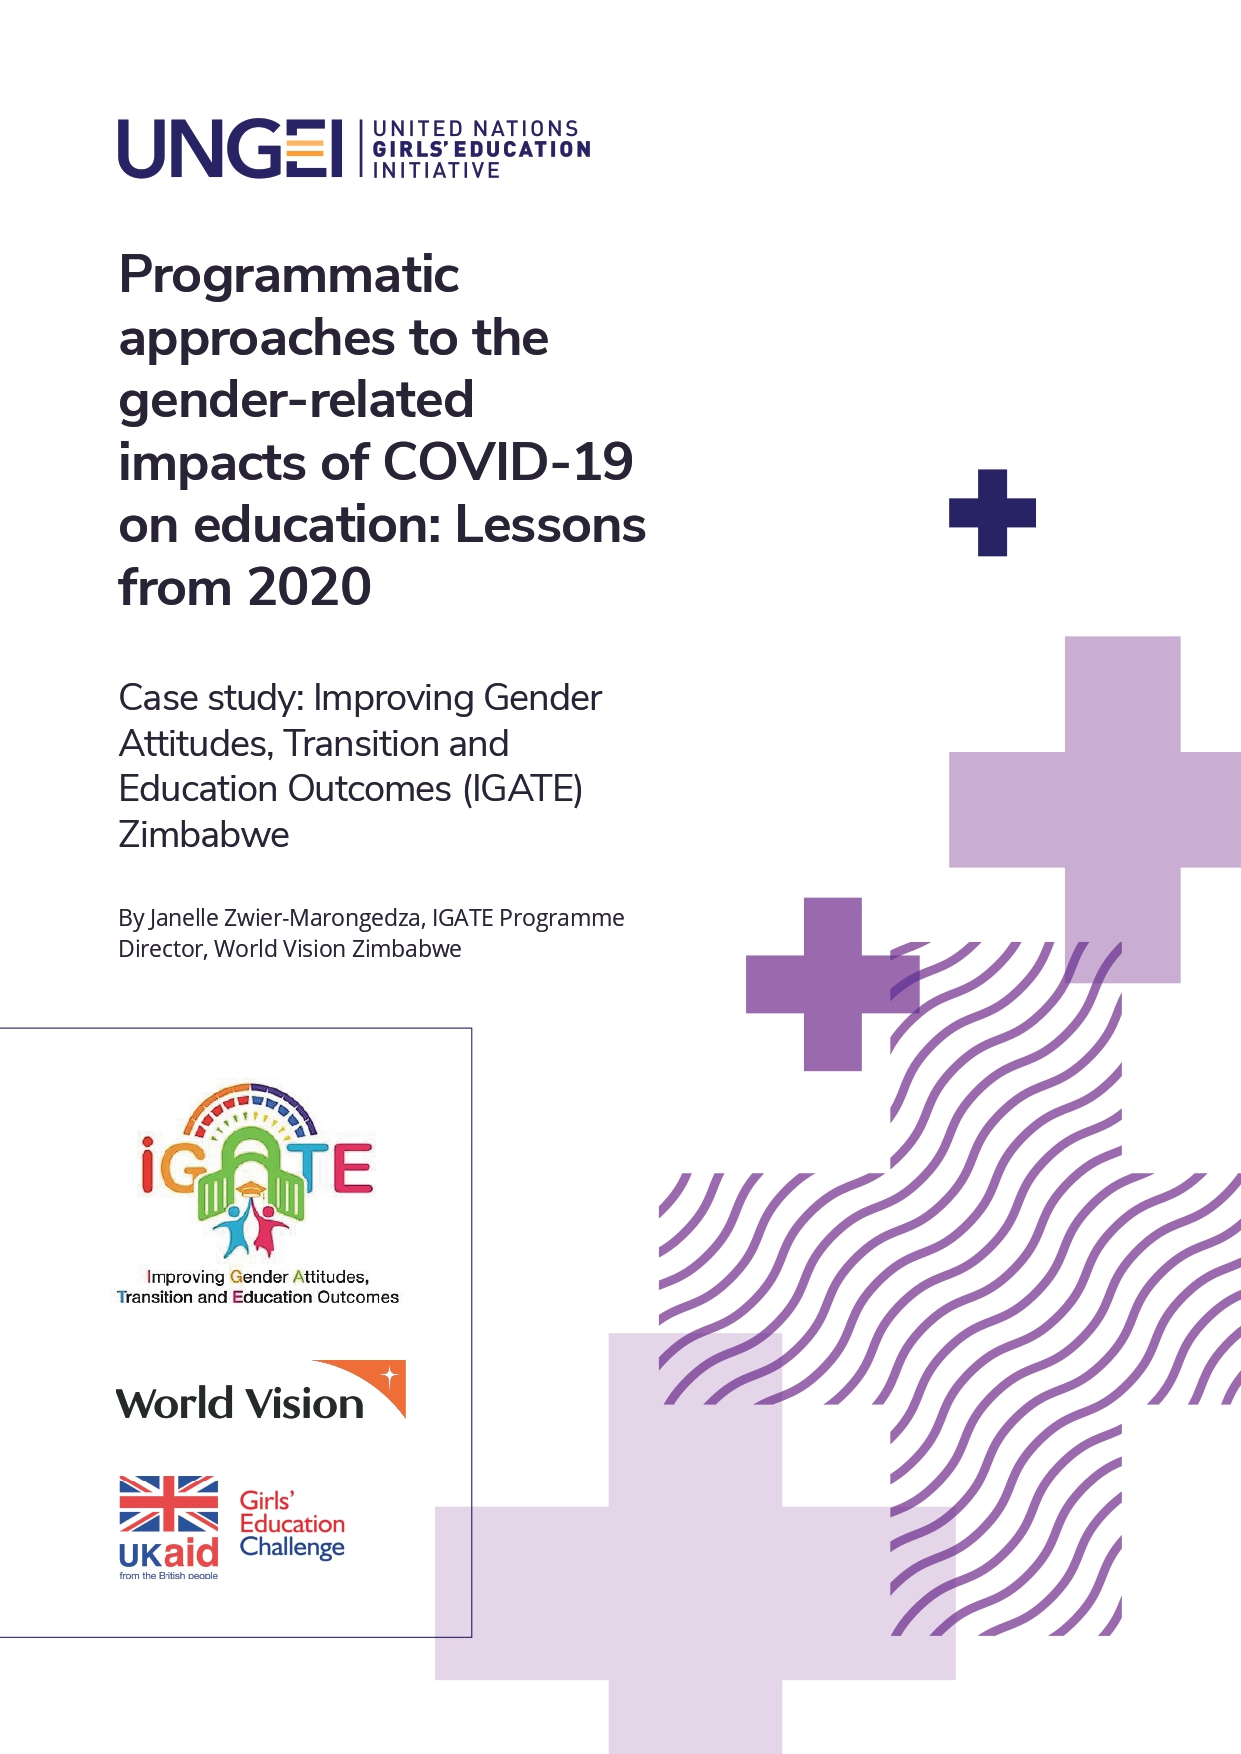 Case study: Improving Gender Attitudes, Transition and Education Outcomes (IGATE) Zimbabwe